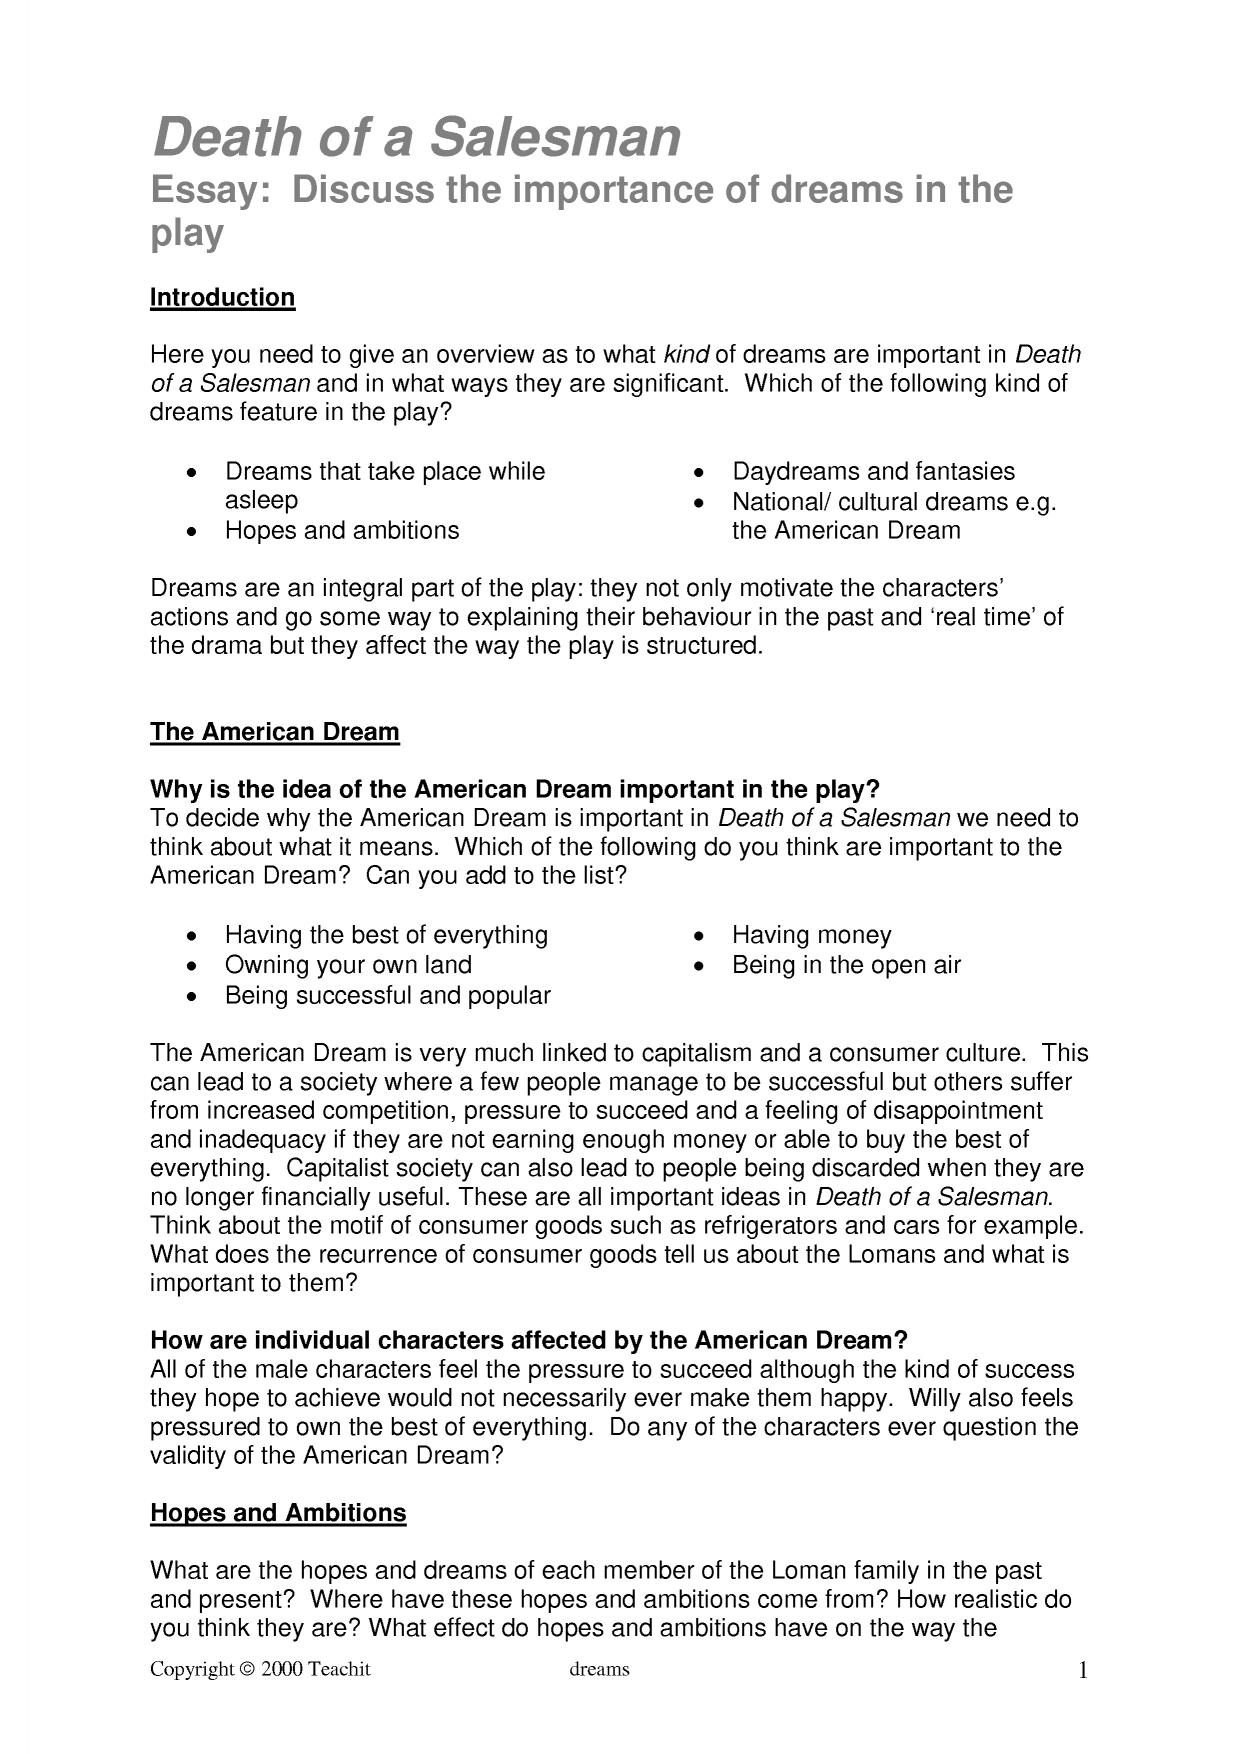 death of a sman ap essay threethreefive com threethreefive com middot ap essay death of